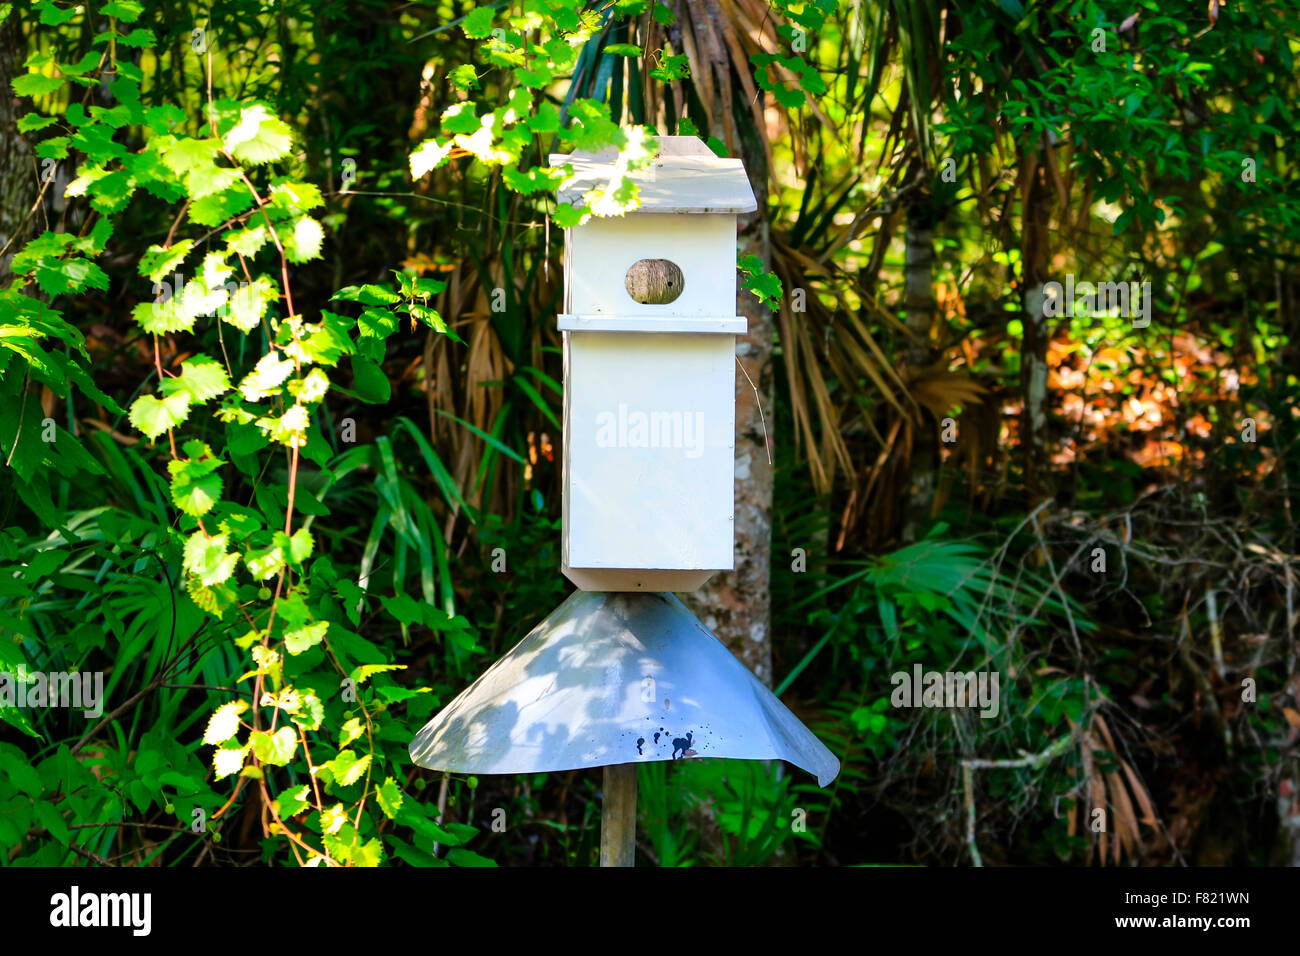 Bird nesting box with an anti-varmint collar seen in the swamps of Florida - Stock Image